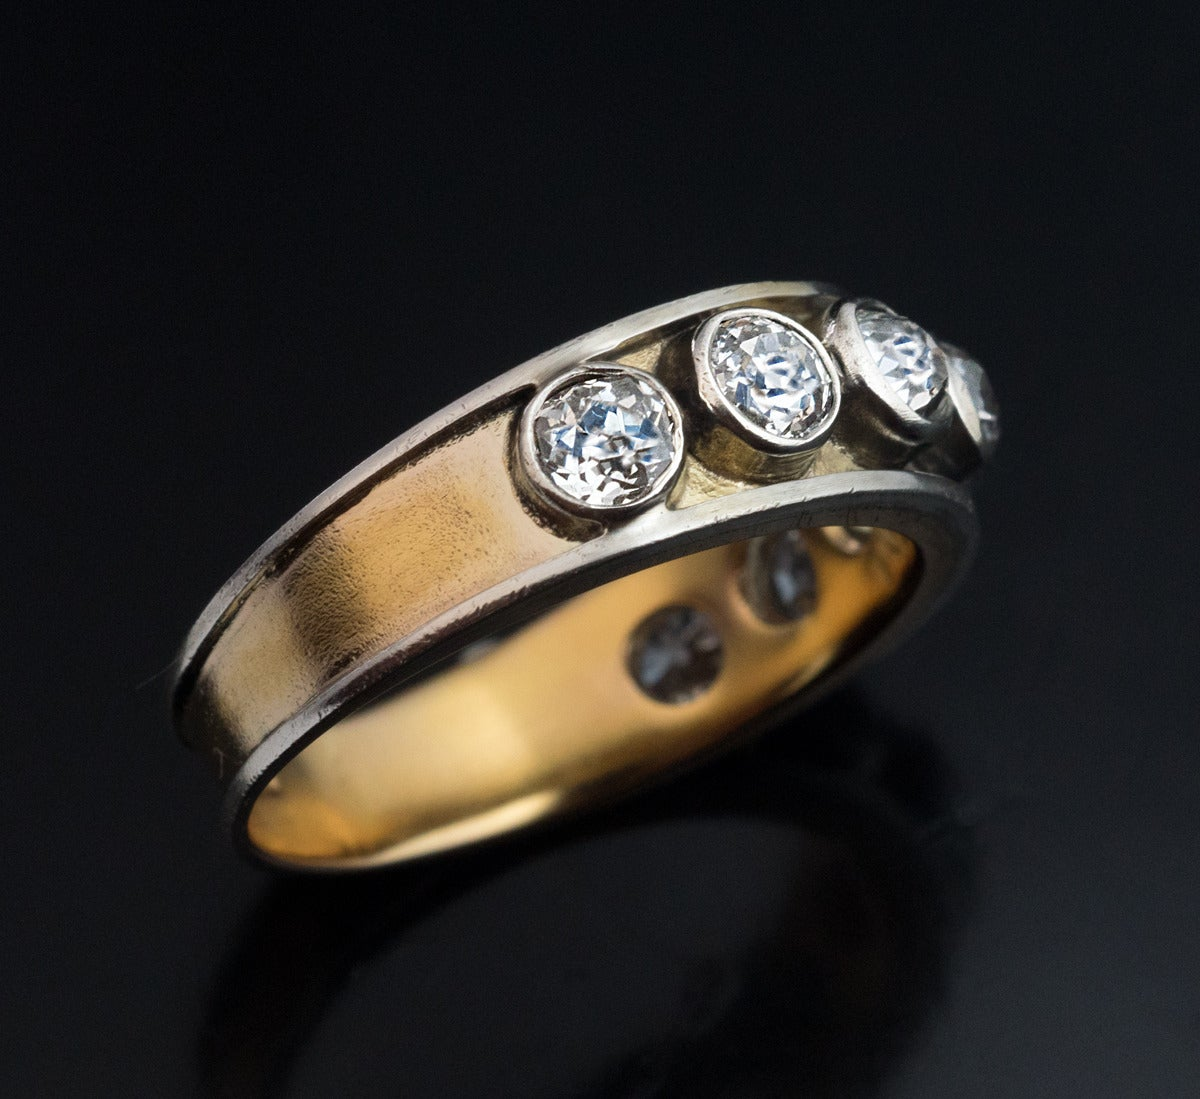 Antique Russian Men s Diamond Gold Band Ring For Sale at 1stdibs